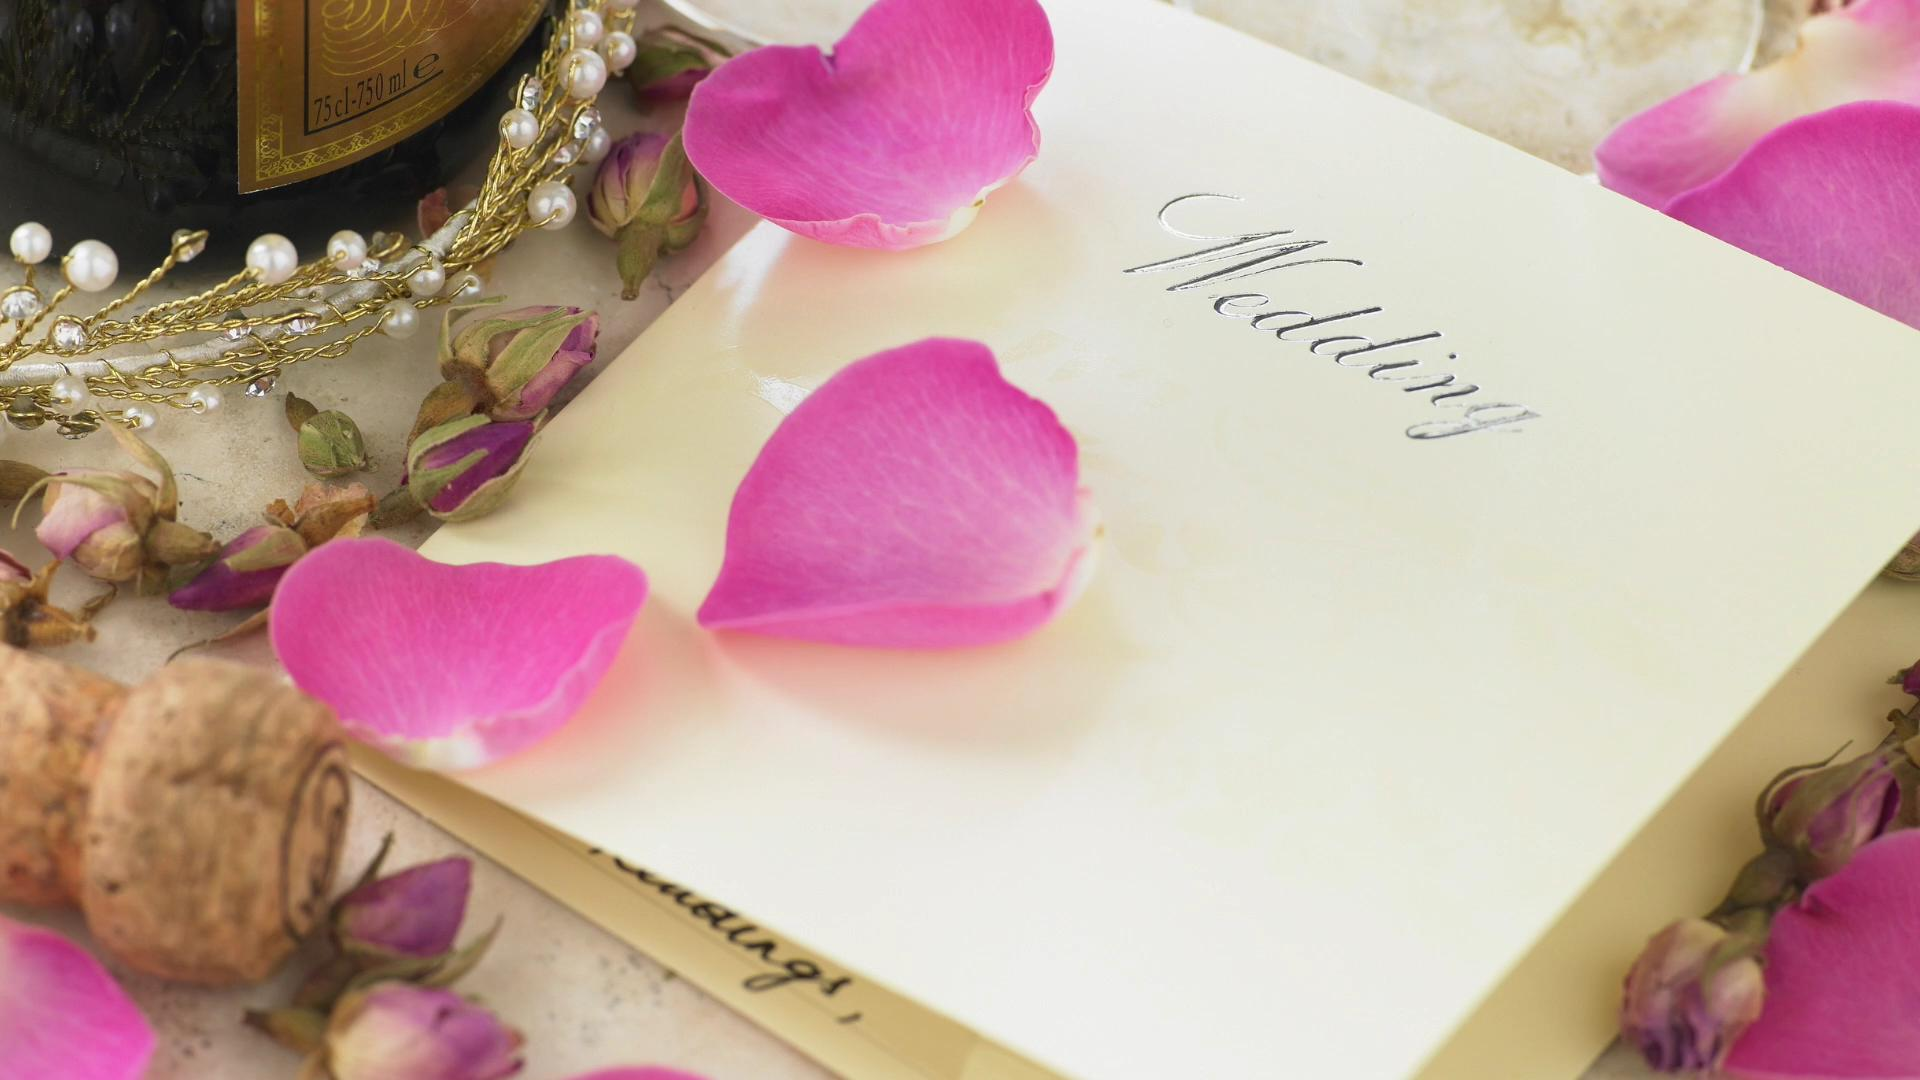 Which state's wedding guests give the highest cash gifts?